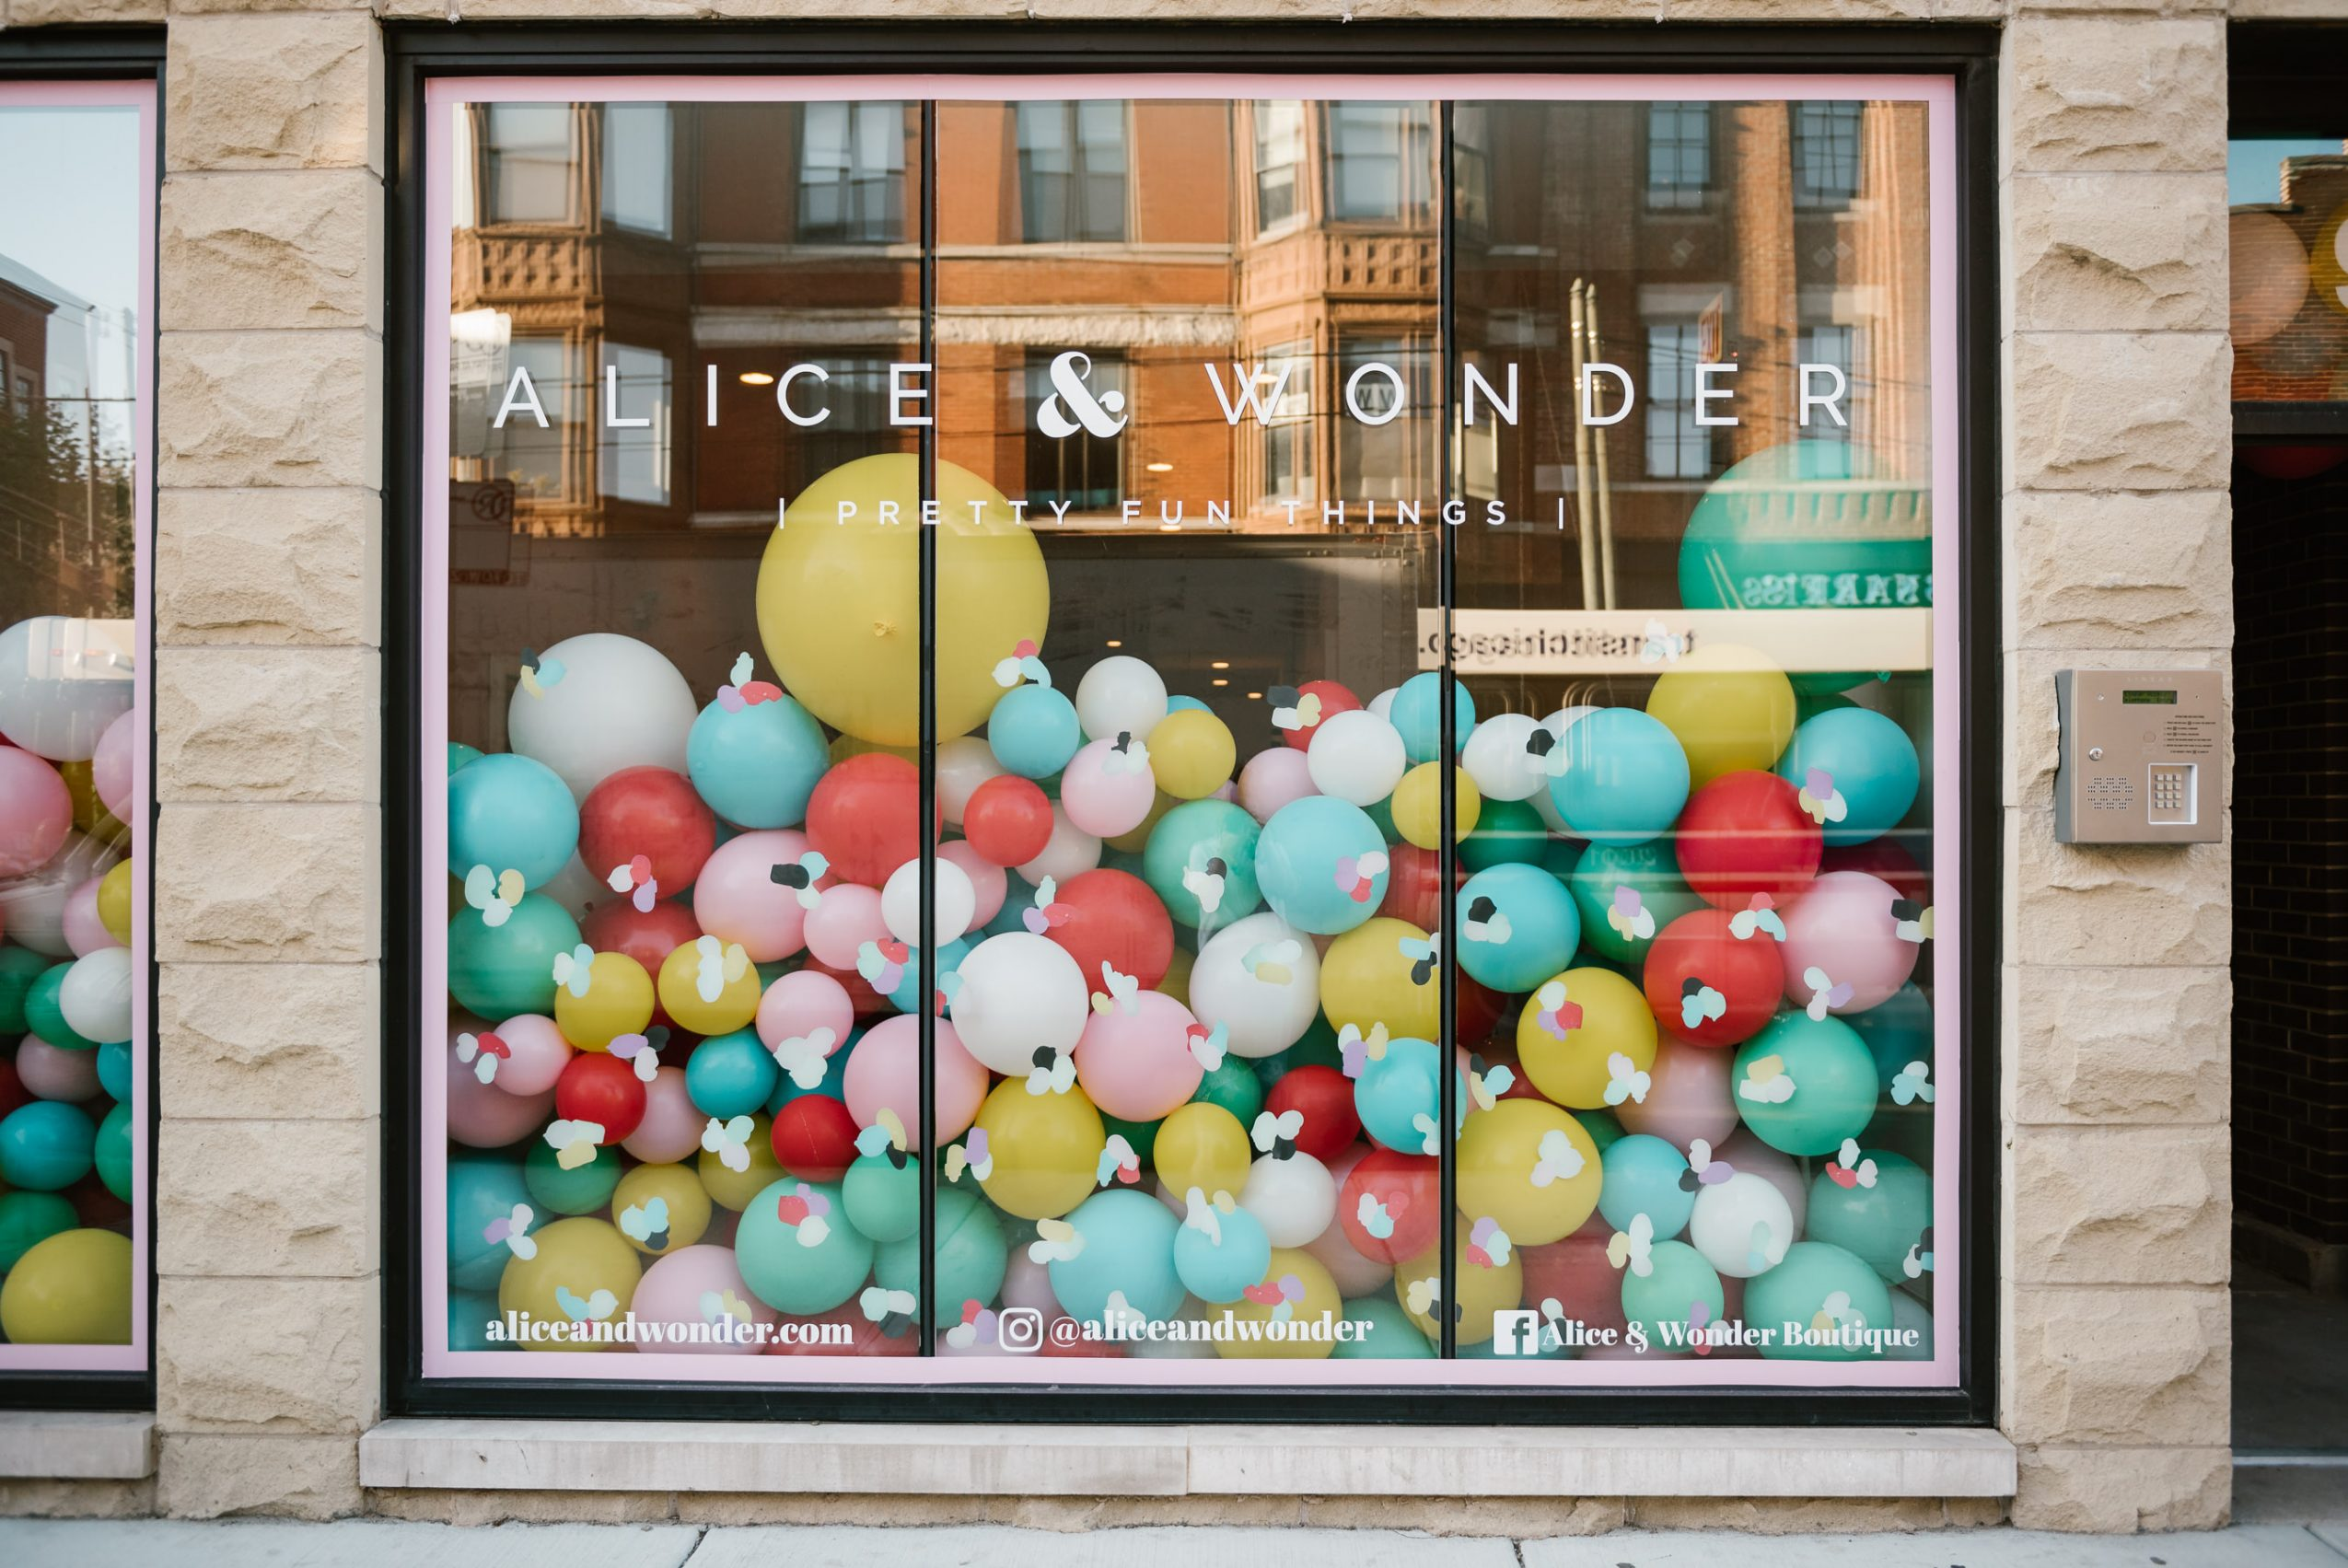 Image result for alice and wonder boutique